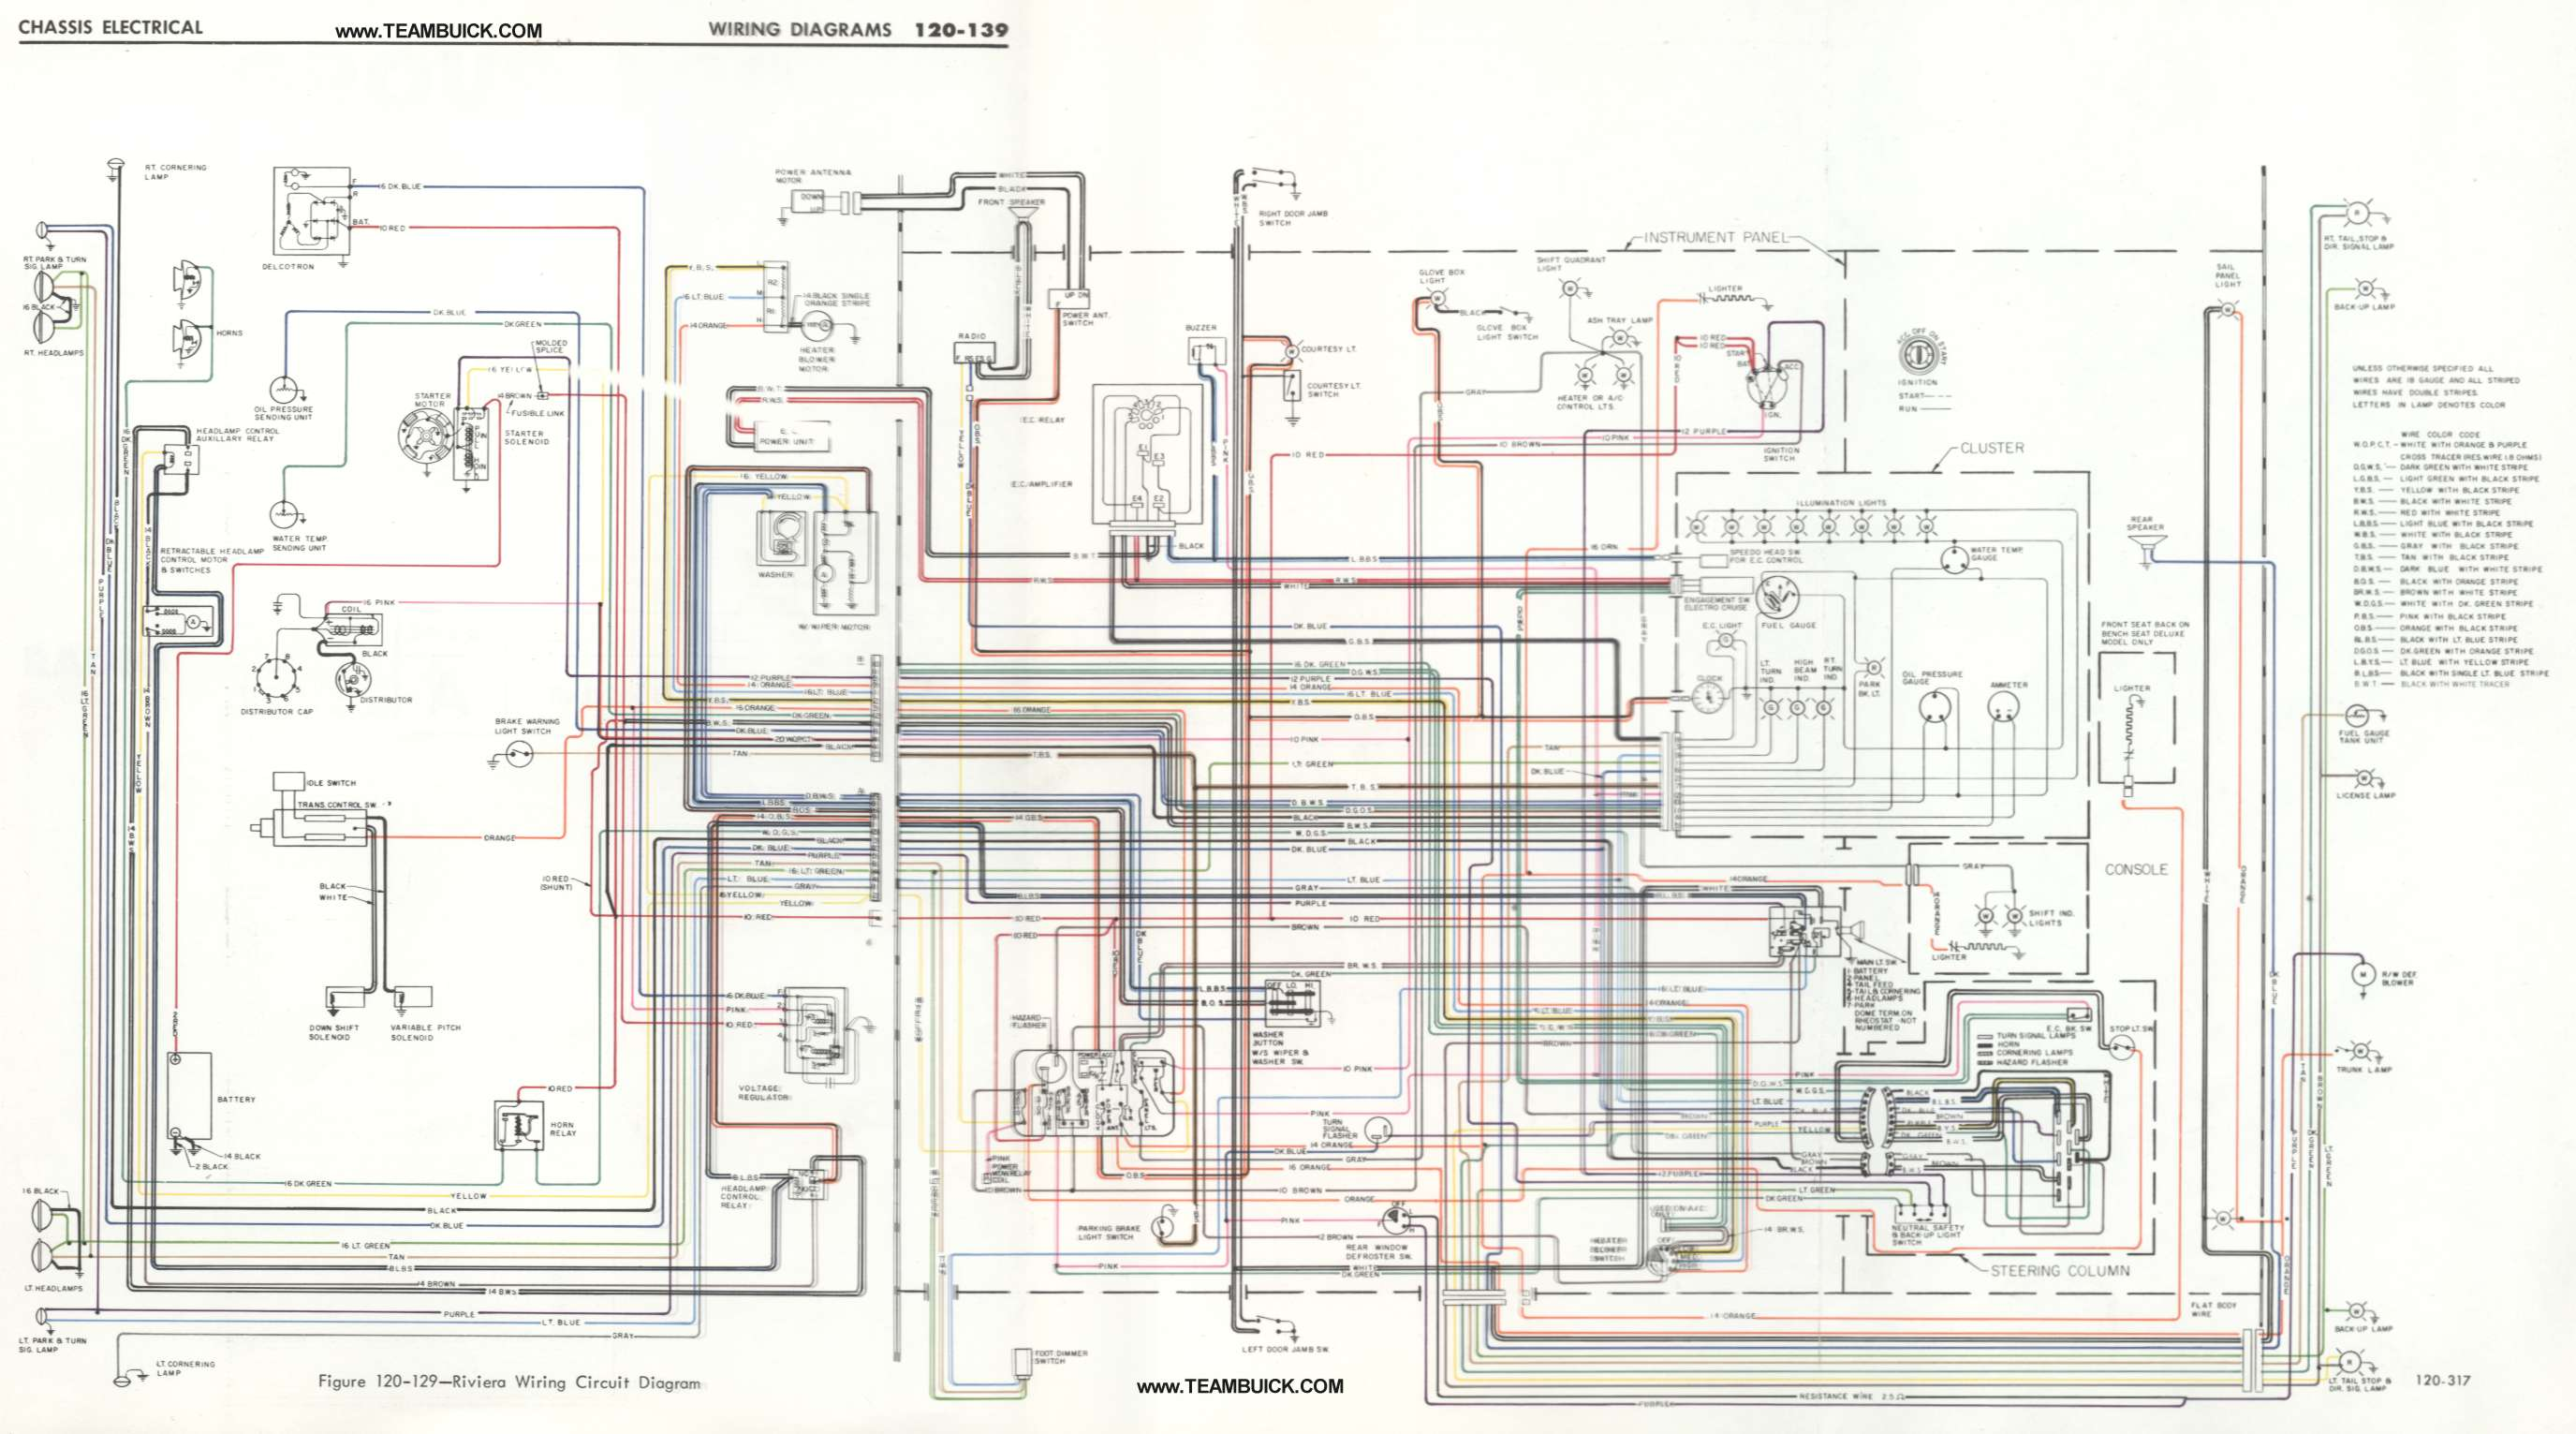 67 Buick Riviera Wiring Diagram Schematic Guide And 97 Park Avenue Engine 1967 Todays Rh 13 10 12 1813weddingbarn Com Signal Stat 900 1996 Fuse Box